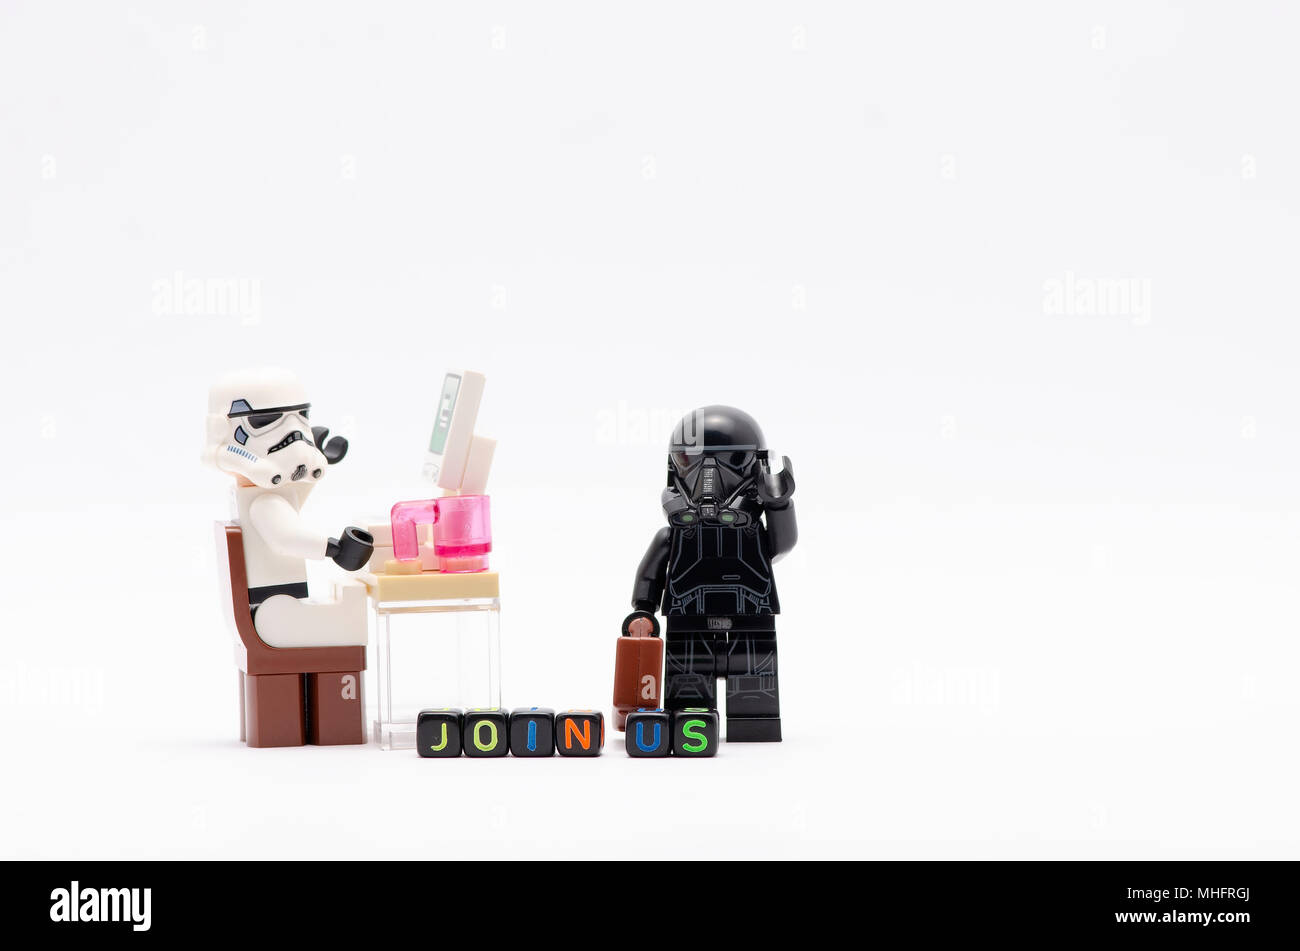 mini figure of storm trooper on chair and death trooper with word join us. Lego minifigures are manufactured by The Lego Group. - Stock Image